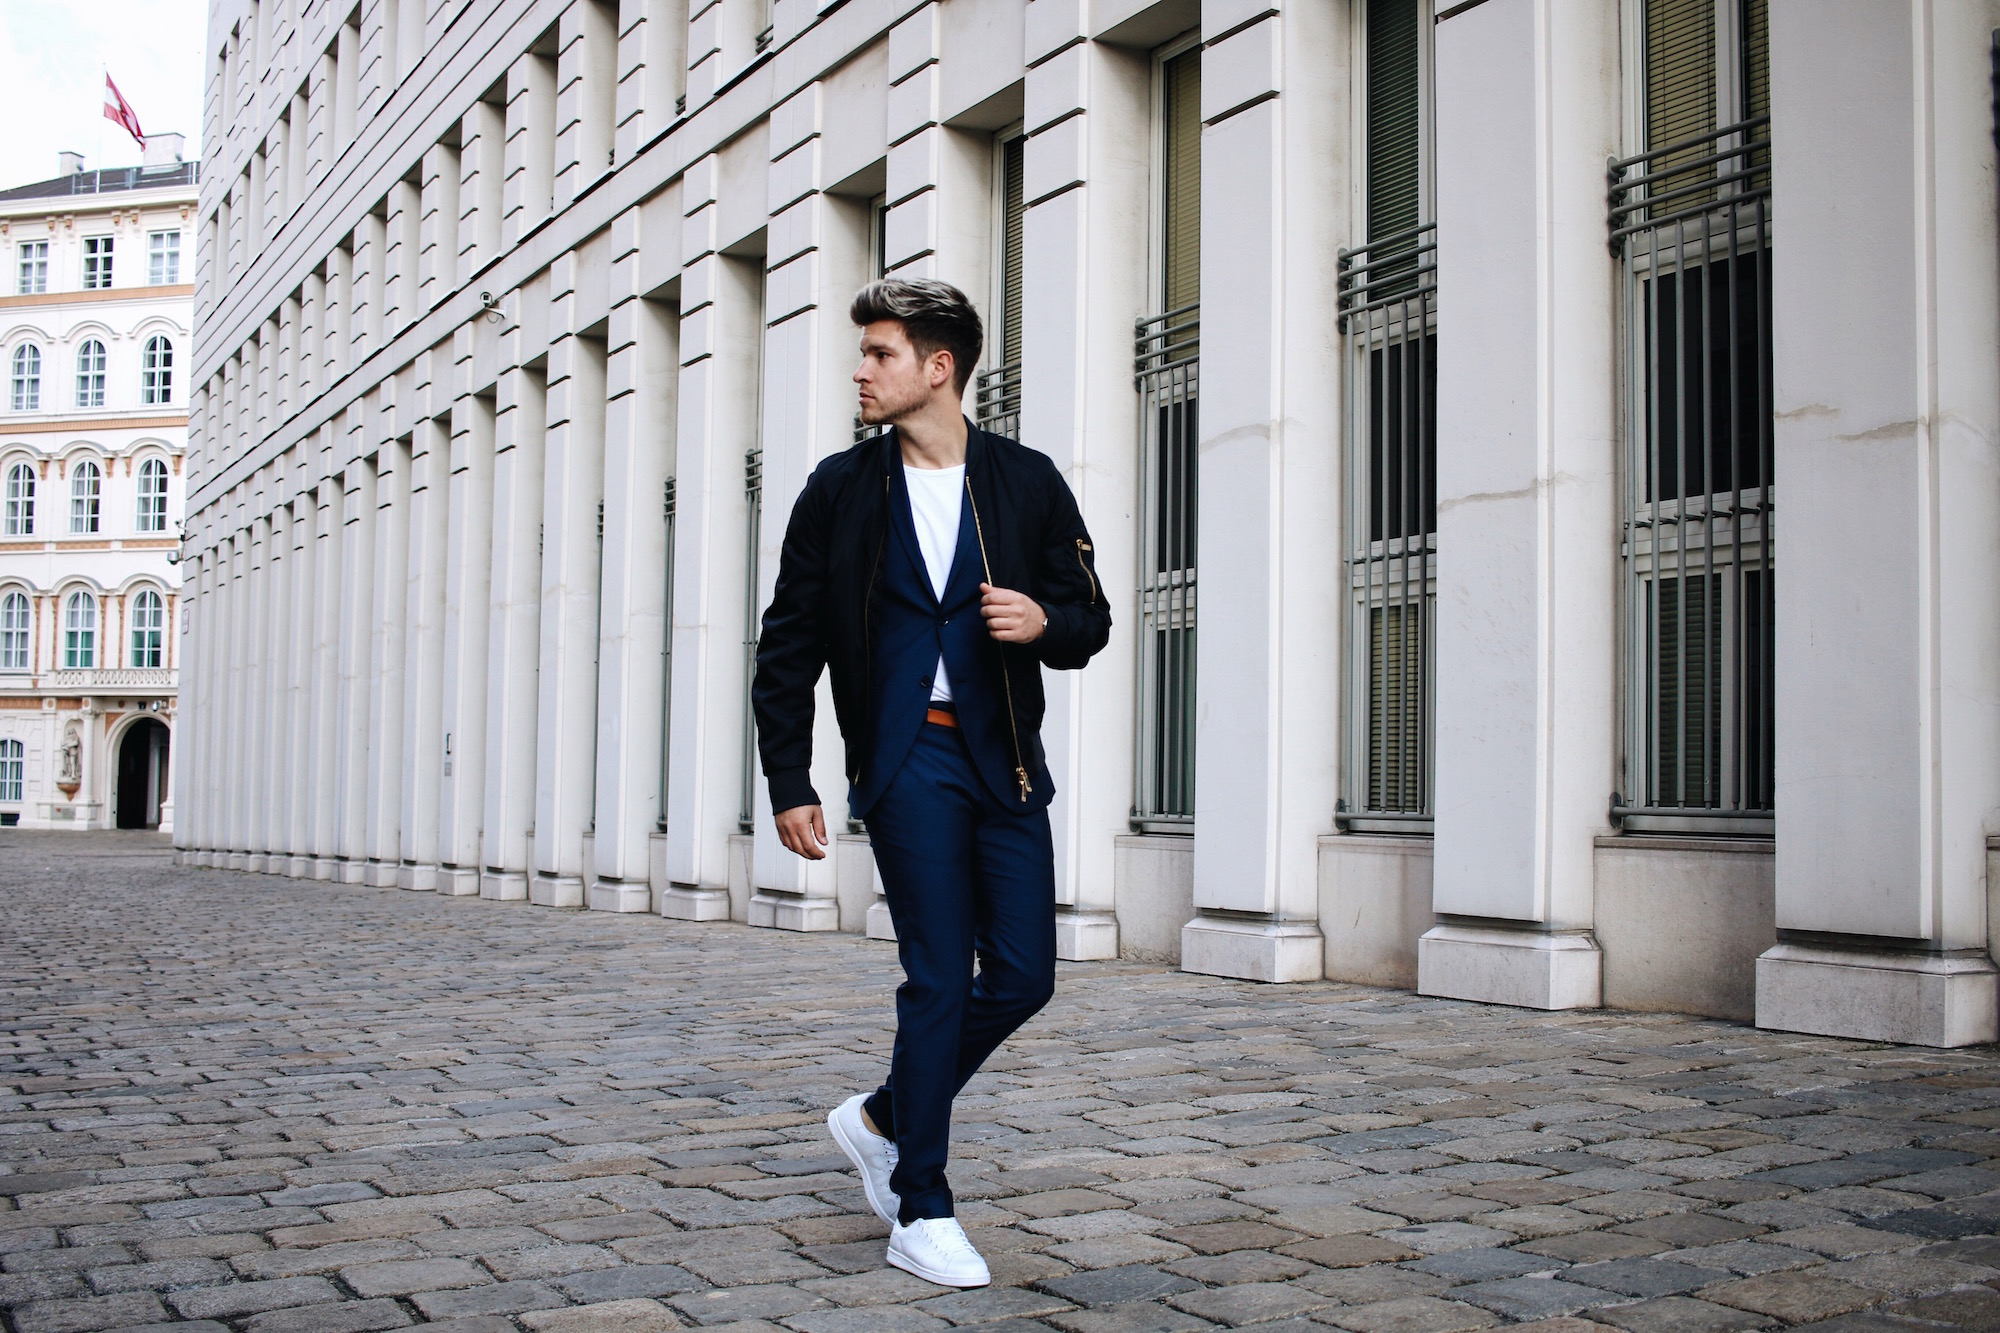 Tiger-Of-Sweden-Suit-Mix-Match_Three-ways-to-wear-a-suit_Meanwhile-in-Awesometown_Austrian-Mens-Fashion-and-Lifestyle-Blogger10